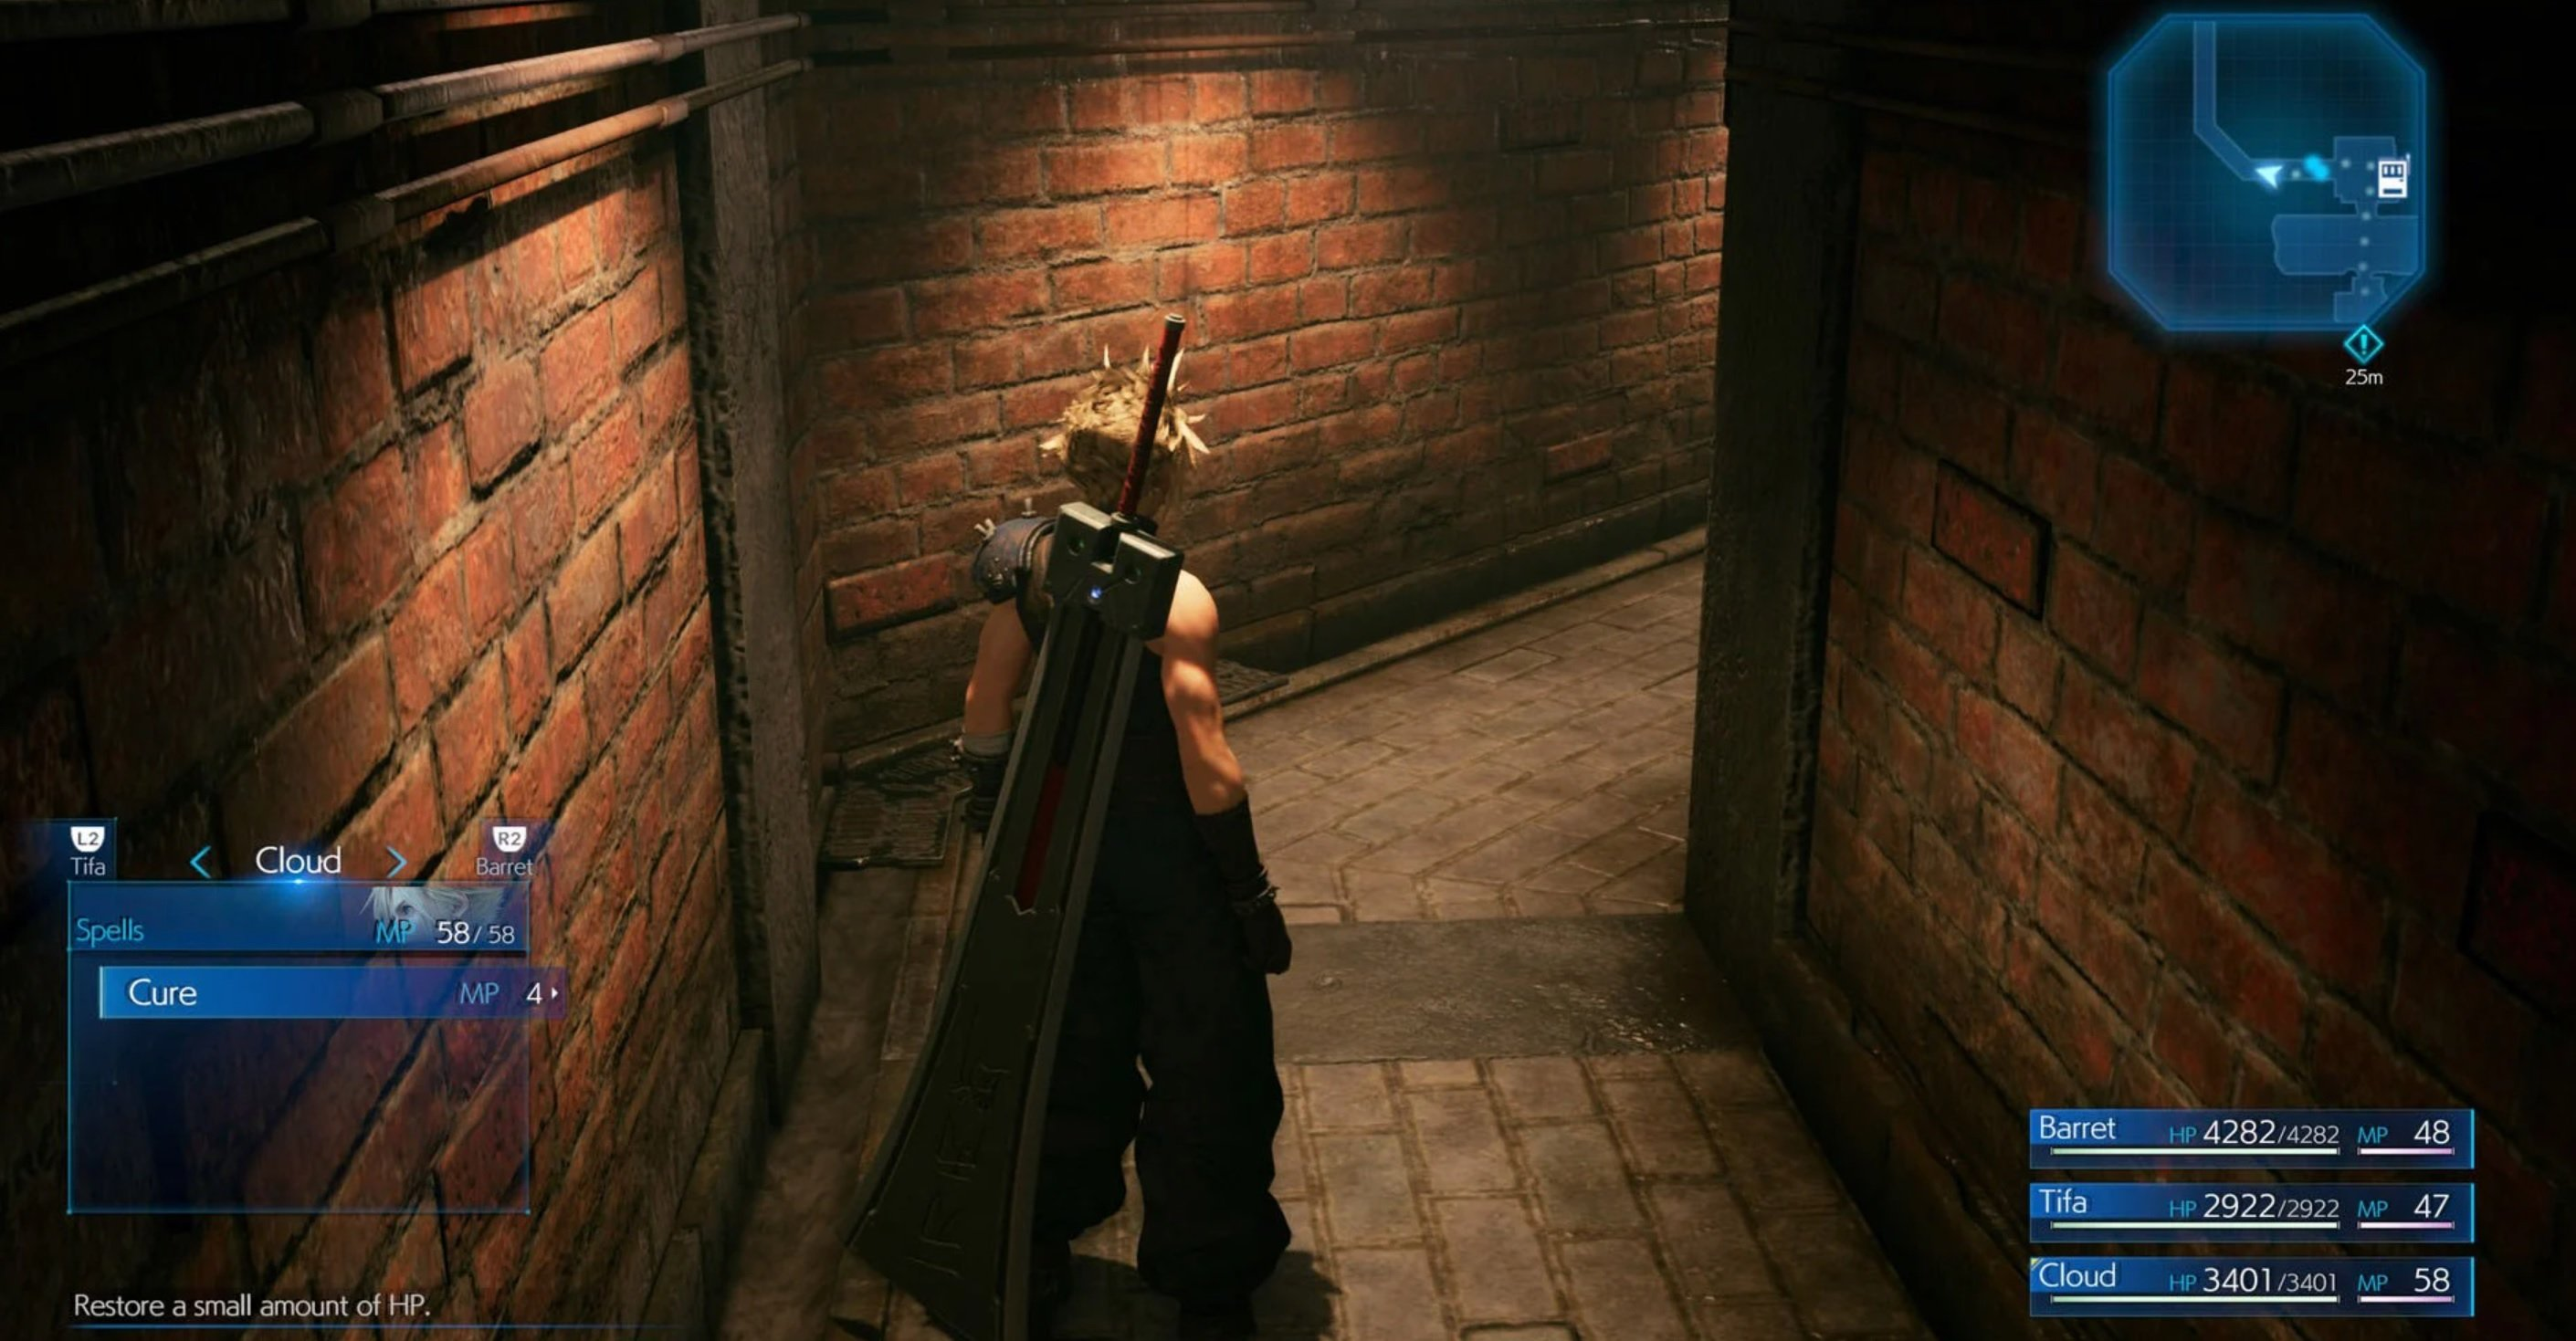 Final Fantasy VII Remake producer says 'Part 2' production is still happening remotely screenshot